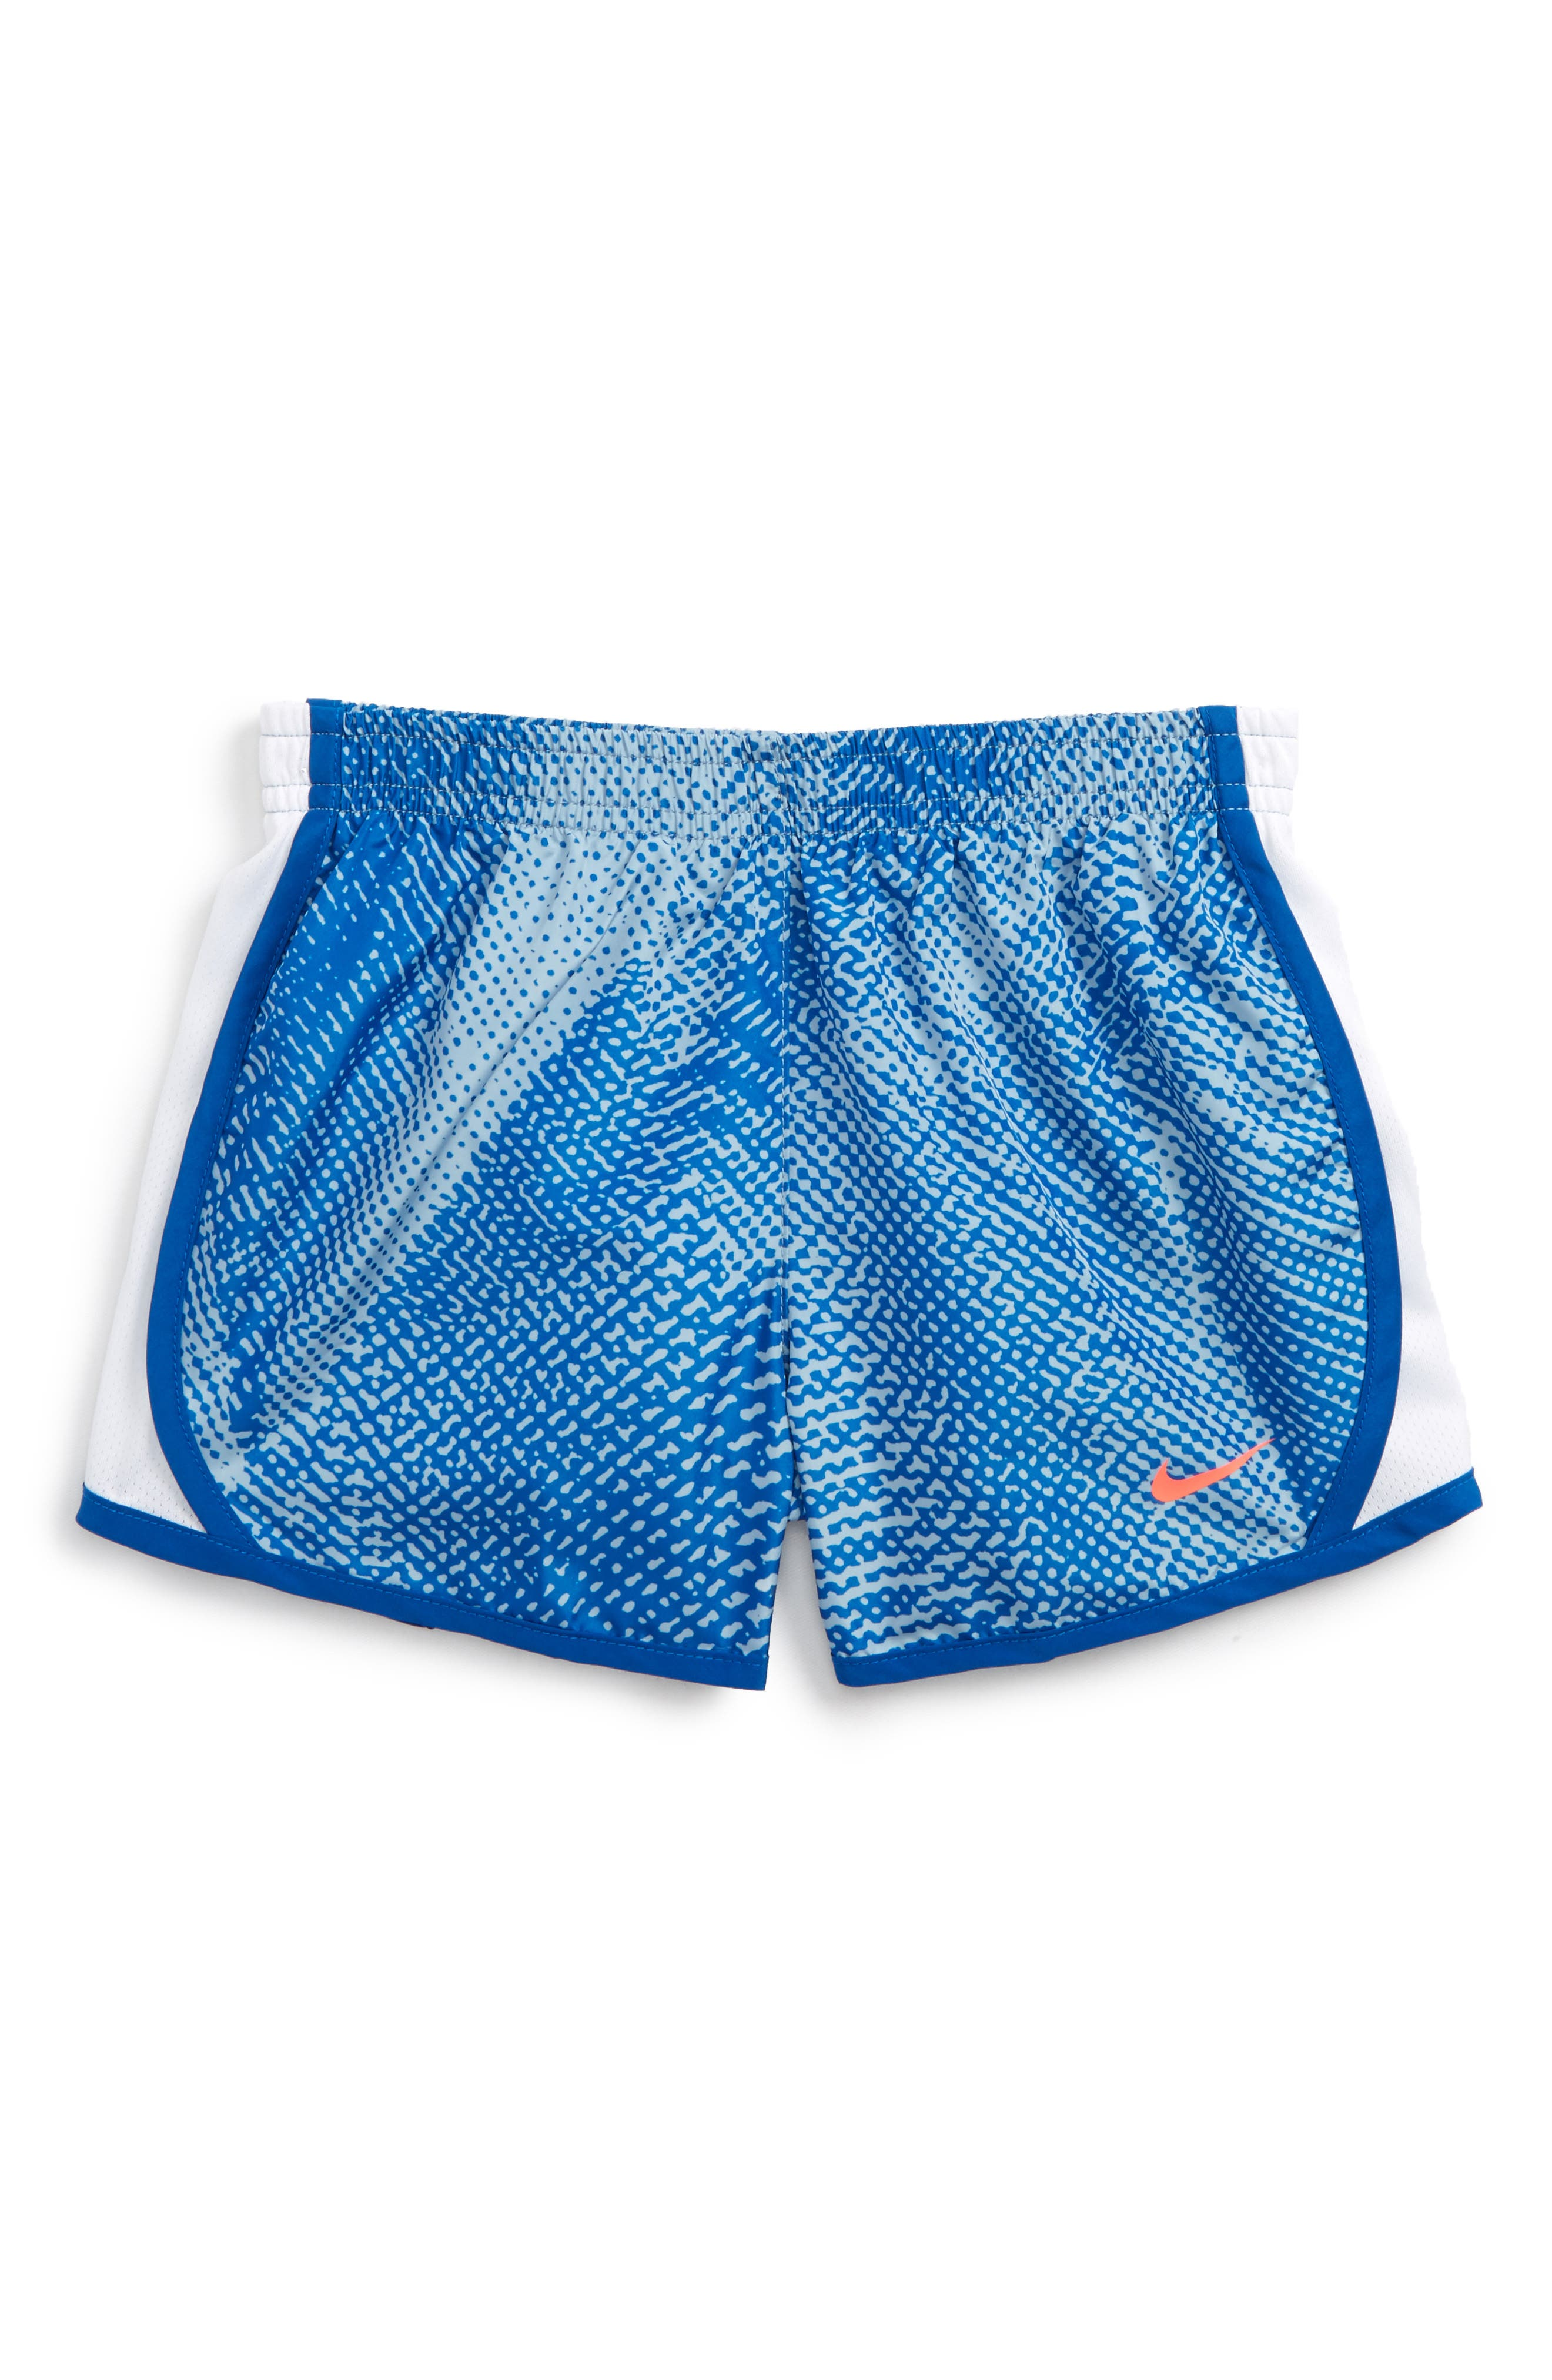 Tempo Dry Athletic Shorts,                         Main,                         color, Blue Jay